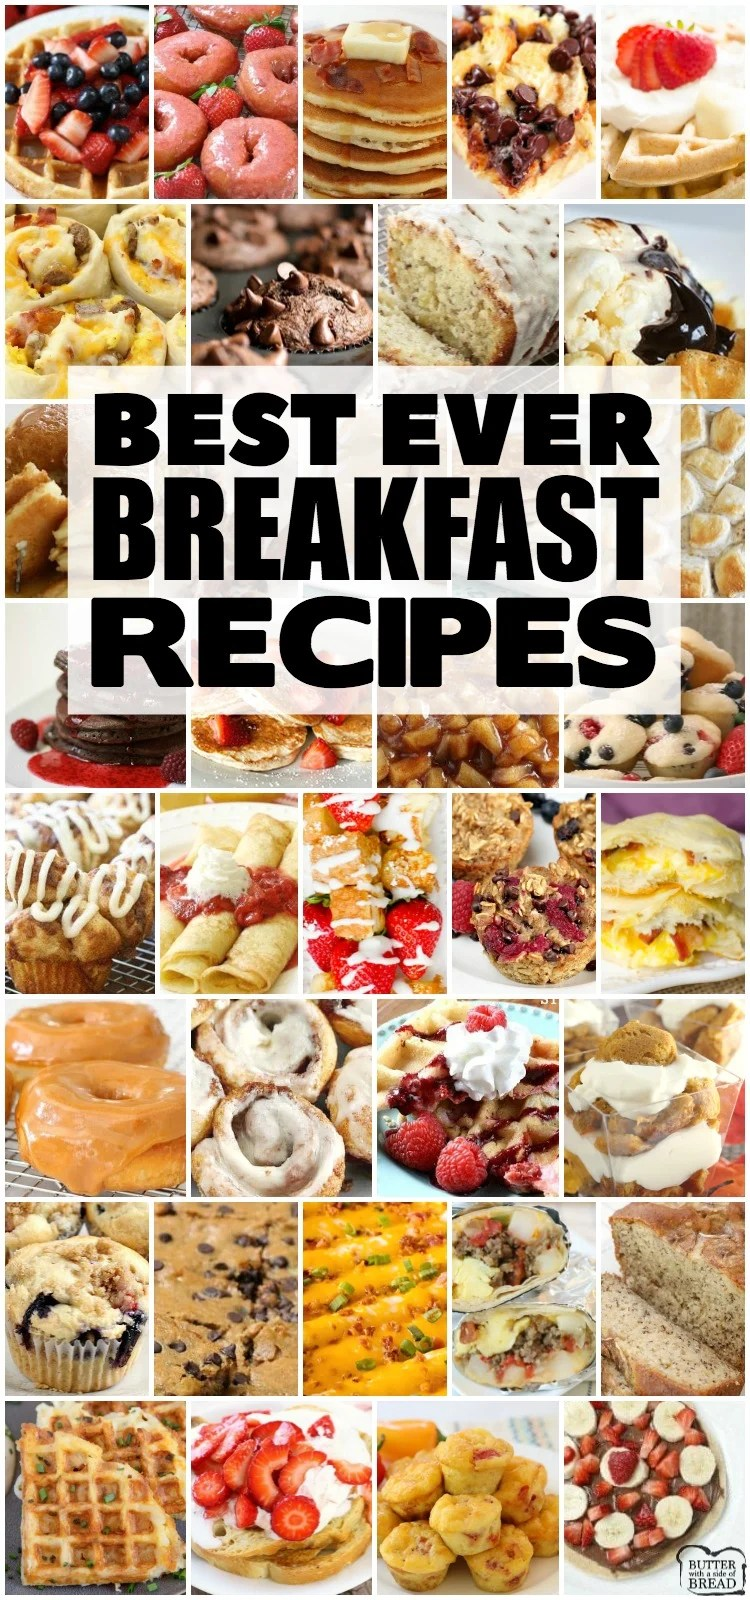 Best Breakfast ideas for anyone who loves breakfast food! Wide variety of breakfast dishes- sweet, savory, breakfast for a crowd or breakfast for two! Pancake recipes, breakfast casseroles, the best way to cook bacon, muffins of all kinds, sweet breads, eggs, crepes, french toast, waffles- this is the most updated, comprehensive collection of breakfast recipes ever! #breakfast #food #recipes #eggs #bacon #casseroles from BUTTER WITH A SIDE OF BREAD